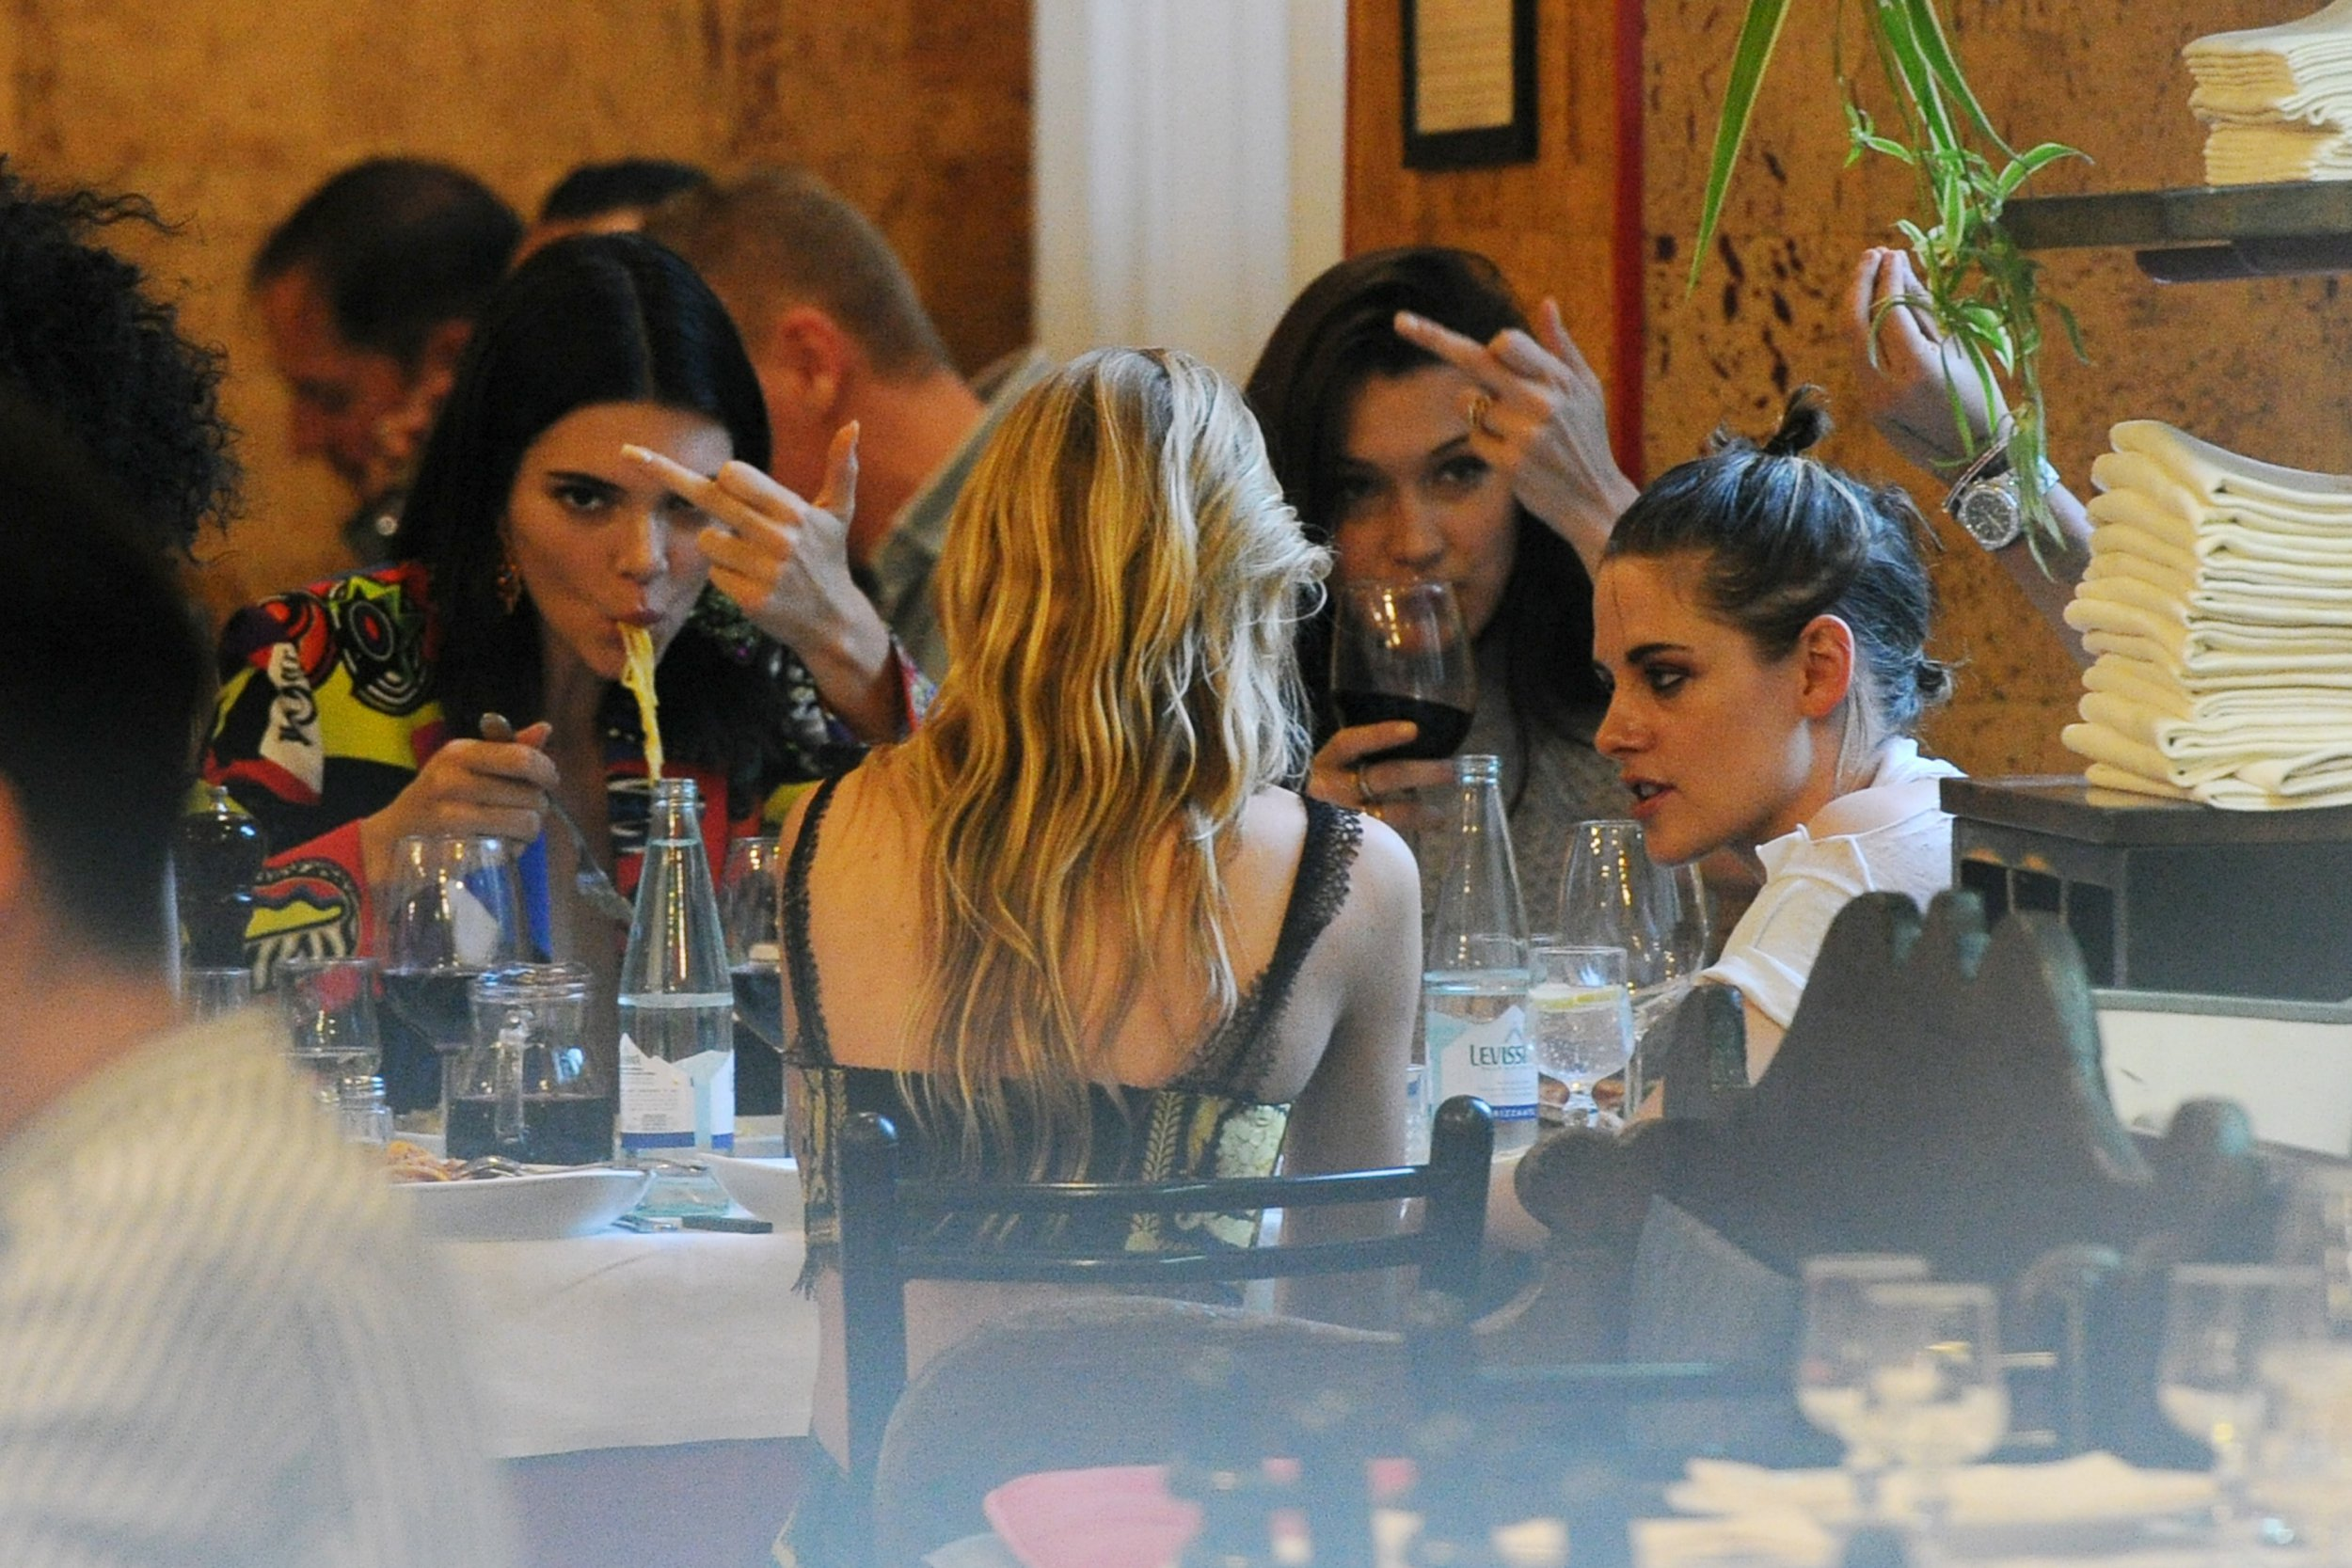 Kendall Jenner and Bella Hadid enjoy pasta, red wine and flipping the bird as they dine with Kristen Stewart